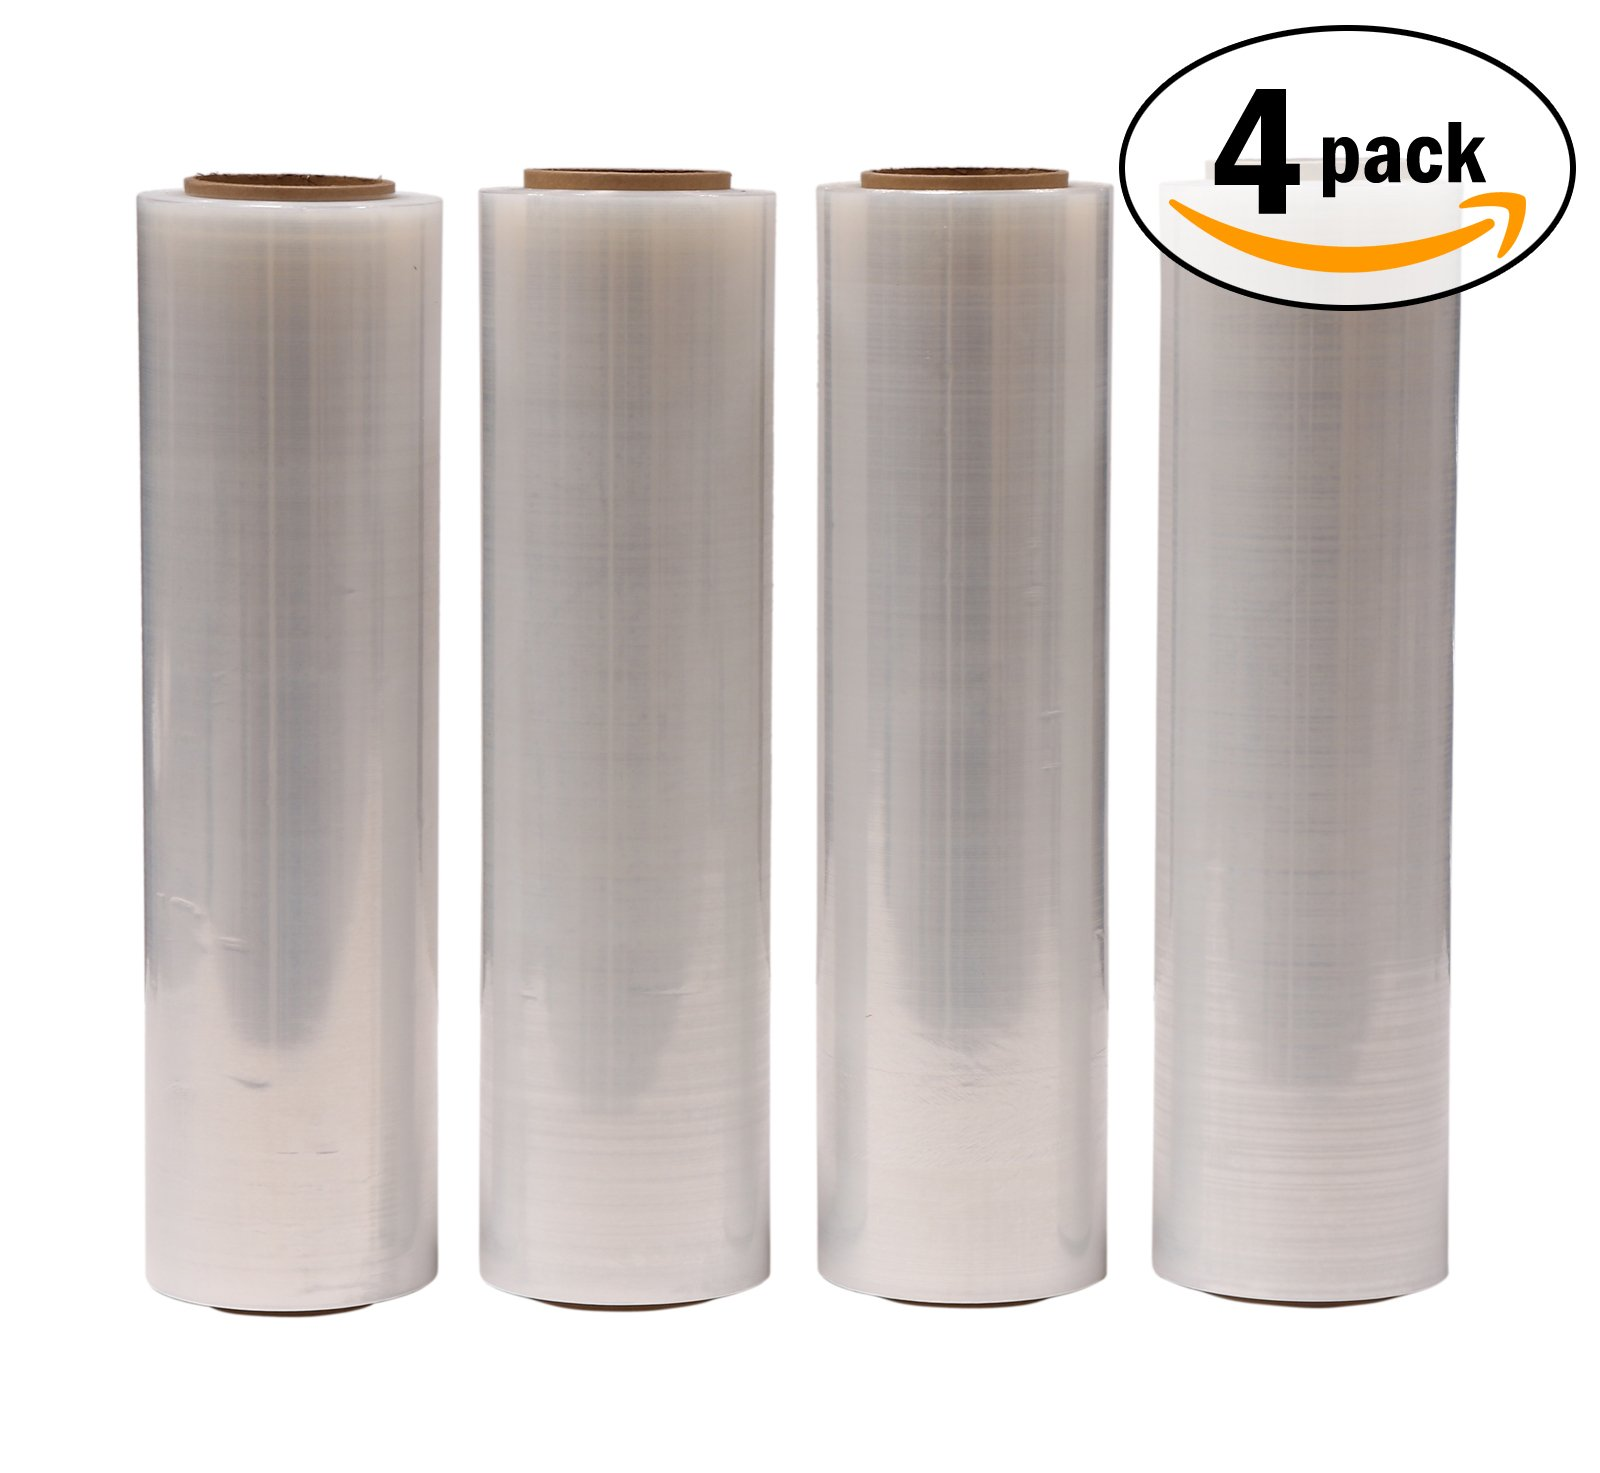 AMERIQUE Shrink Wrap 4 Pack (4000FTX18'', 25.2 LBS Total): Stretch Film Plastic Wrap - Industrial Strength Hand Stretch Wrap, 18''x 1,000 FT Per Roll, 80 Gauge Shrink Film / Pallet Wrap – Clear by AMERIQUE